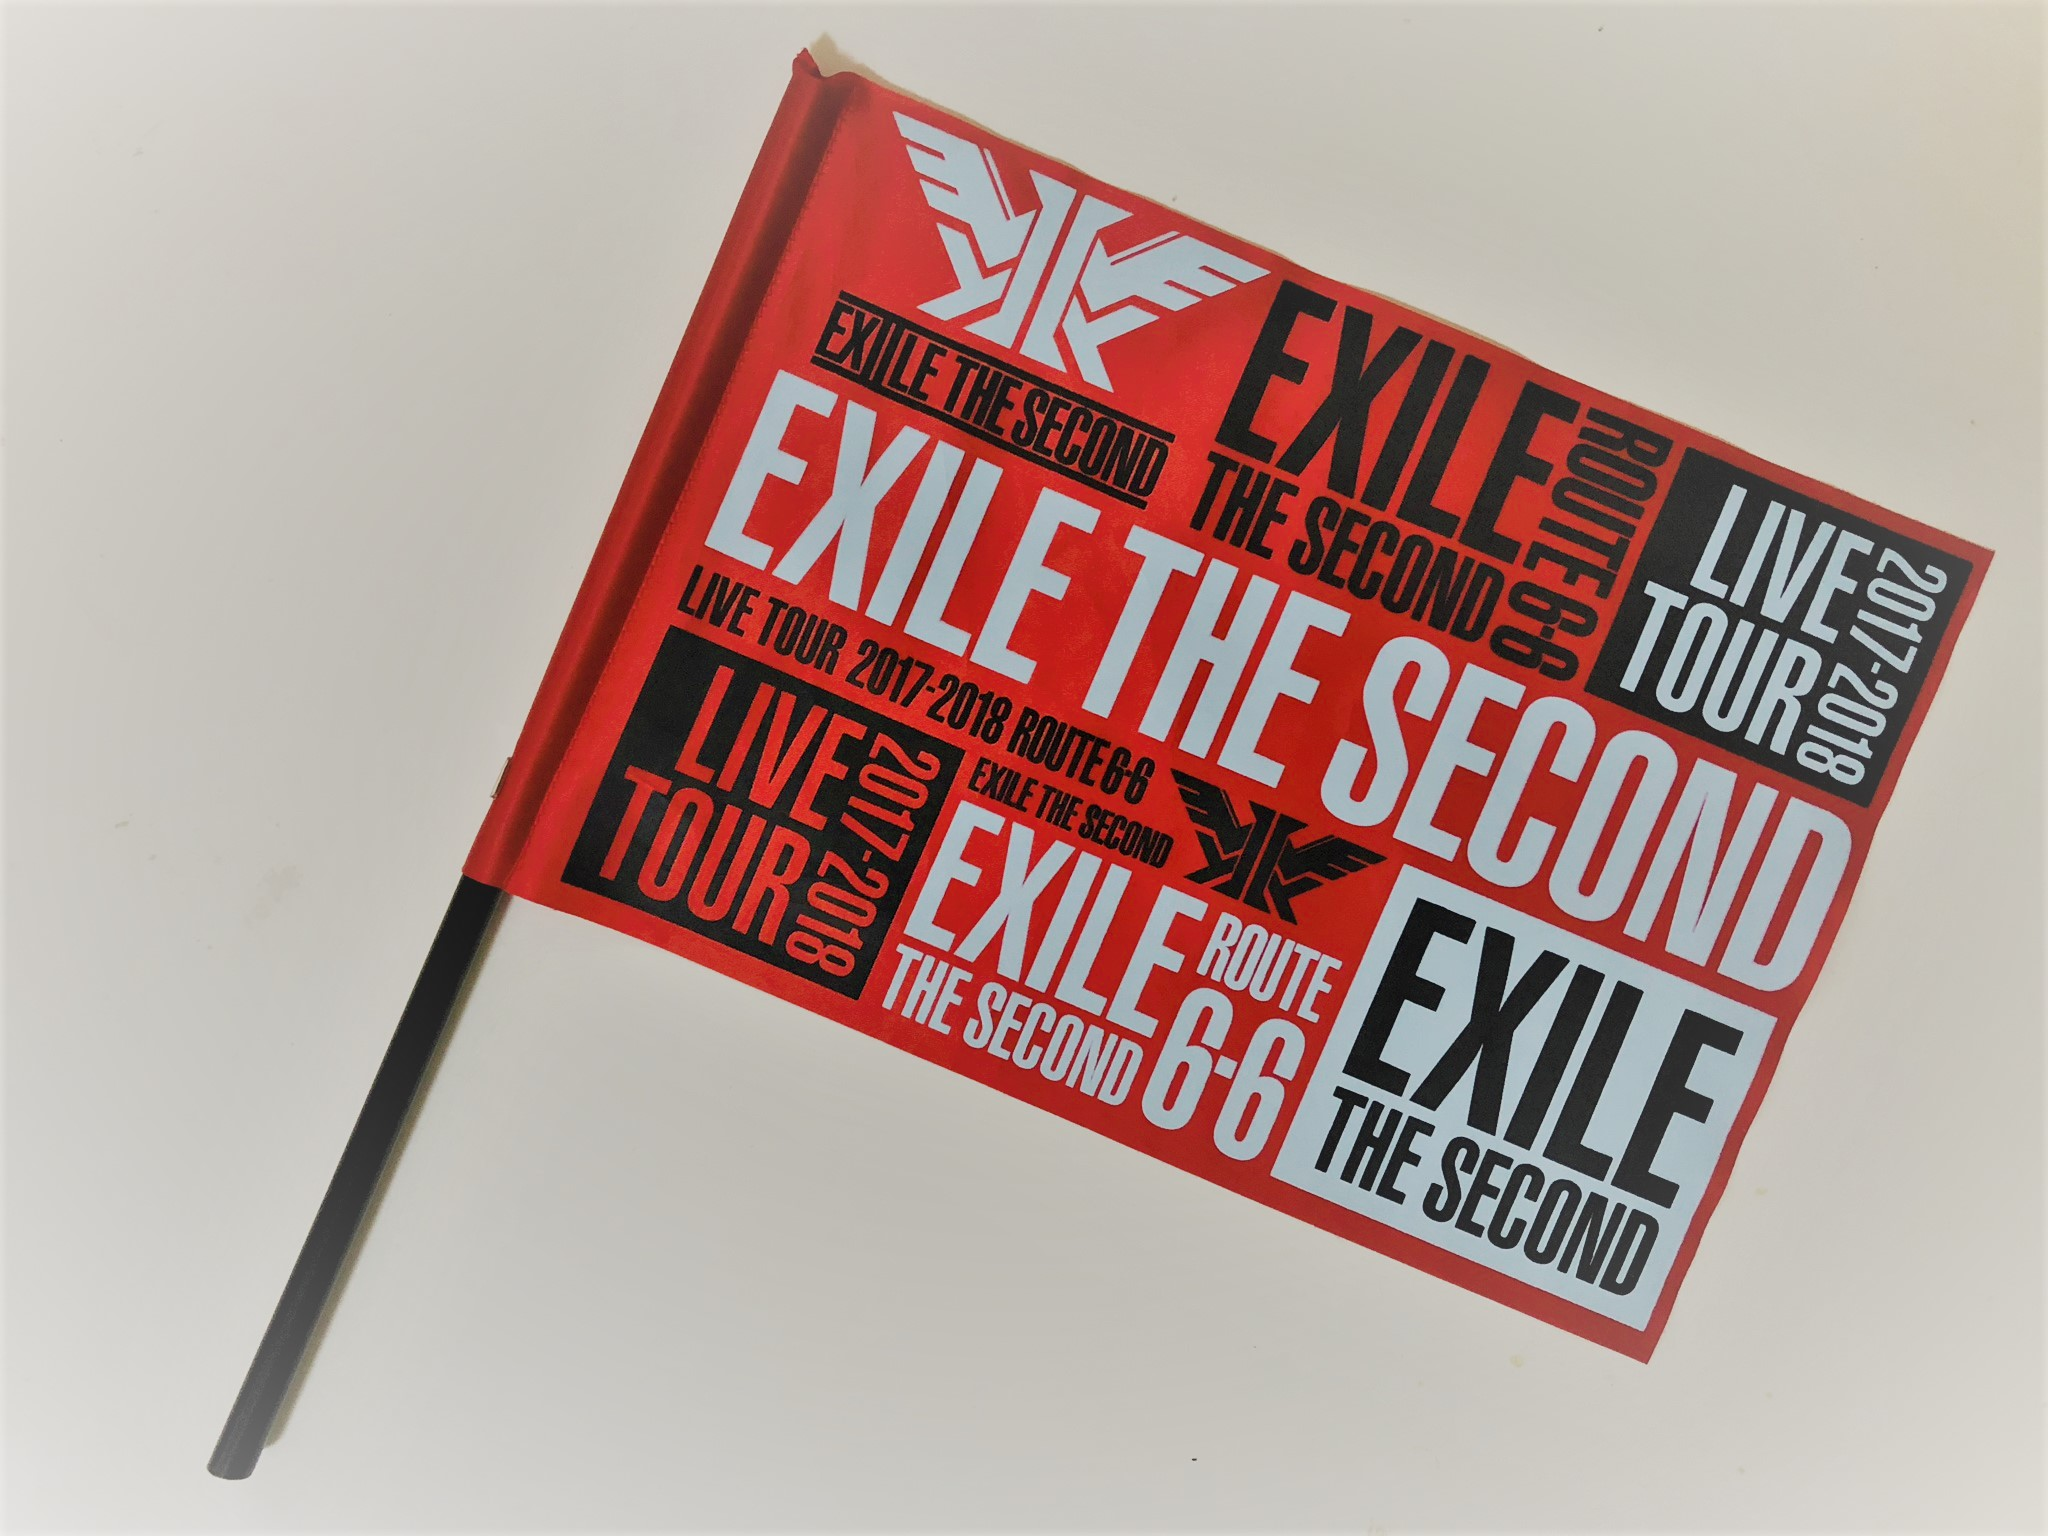 exile セカンド ライブ